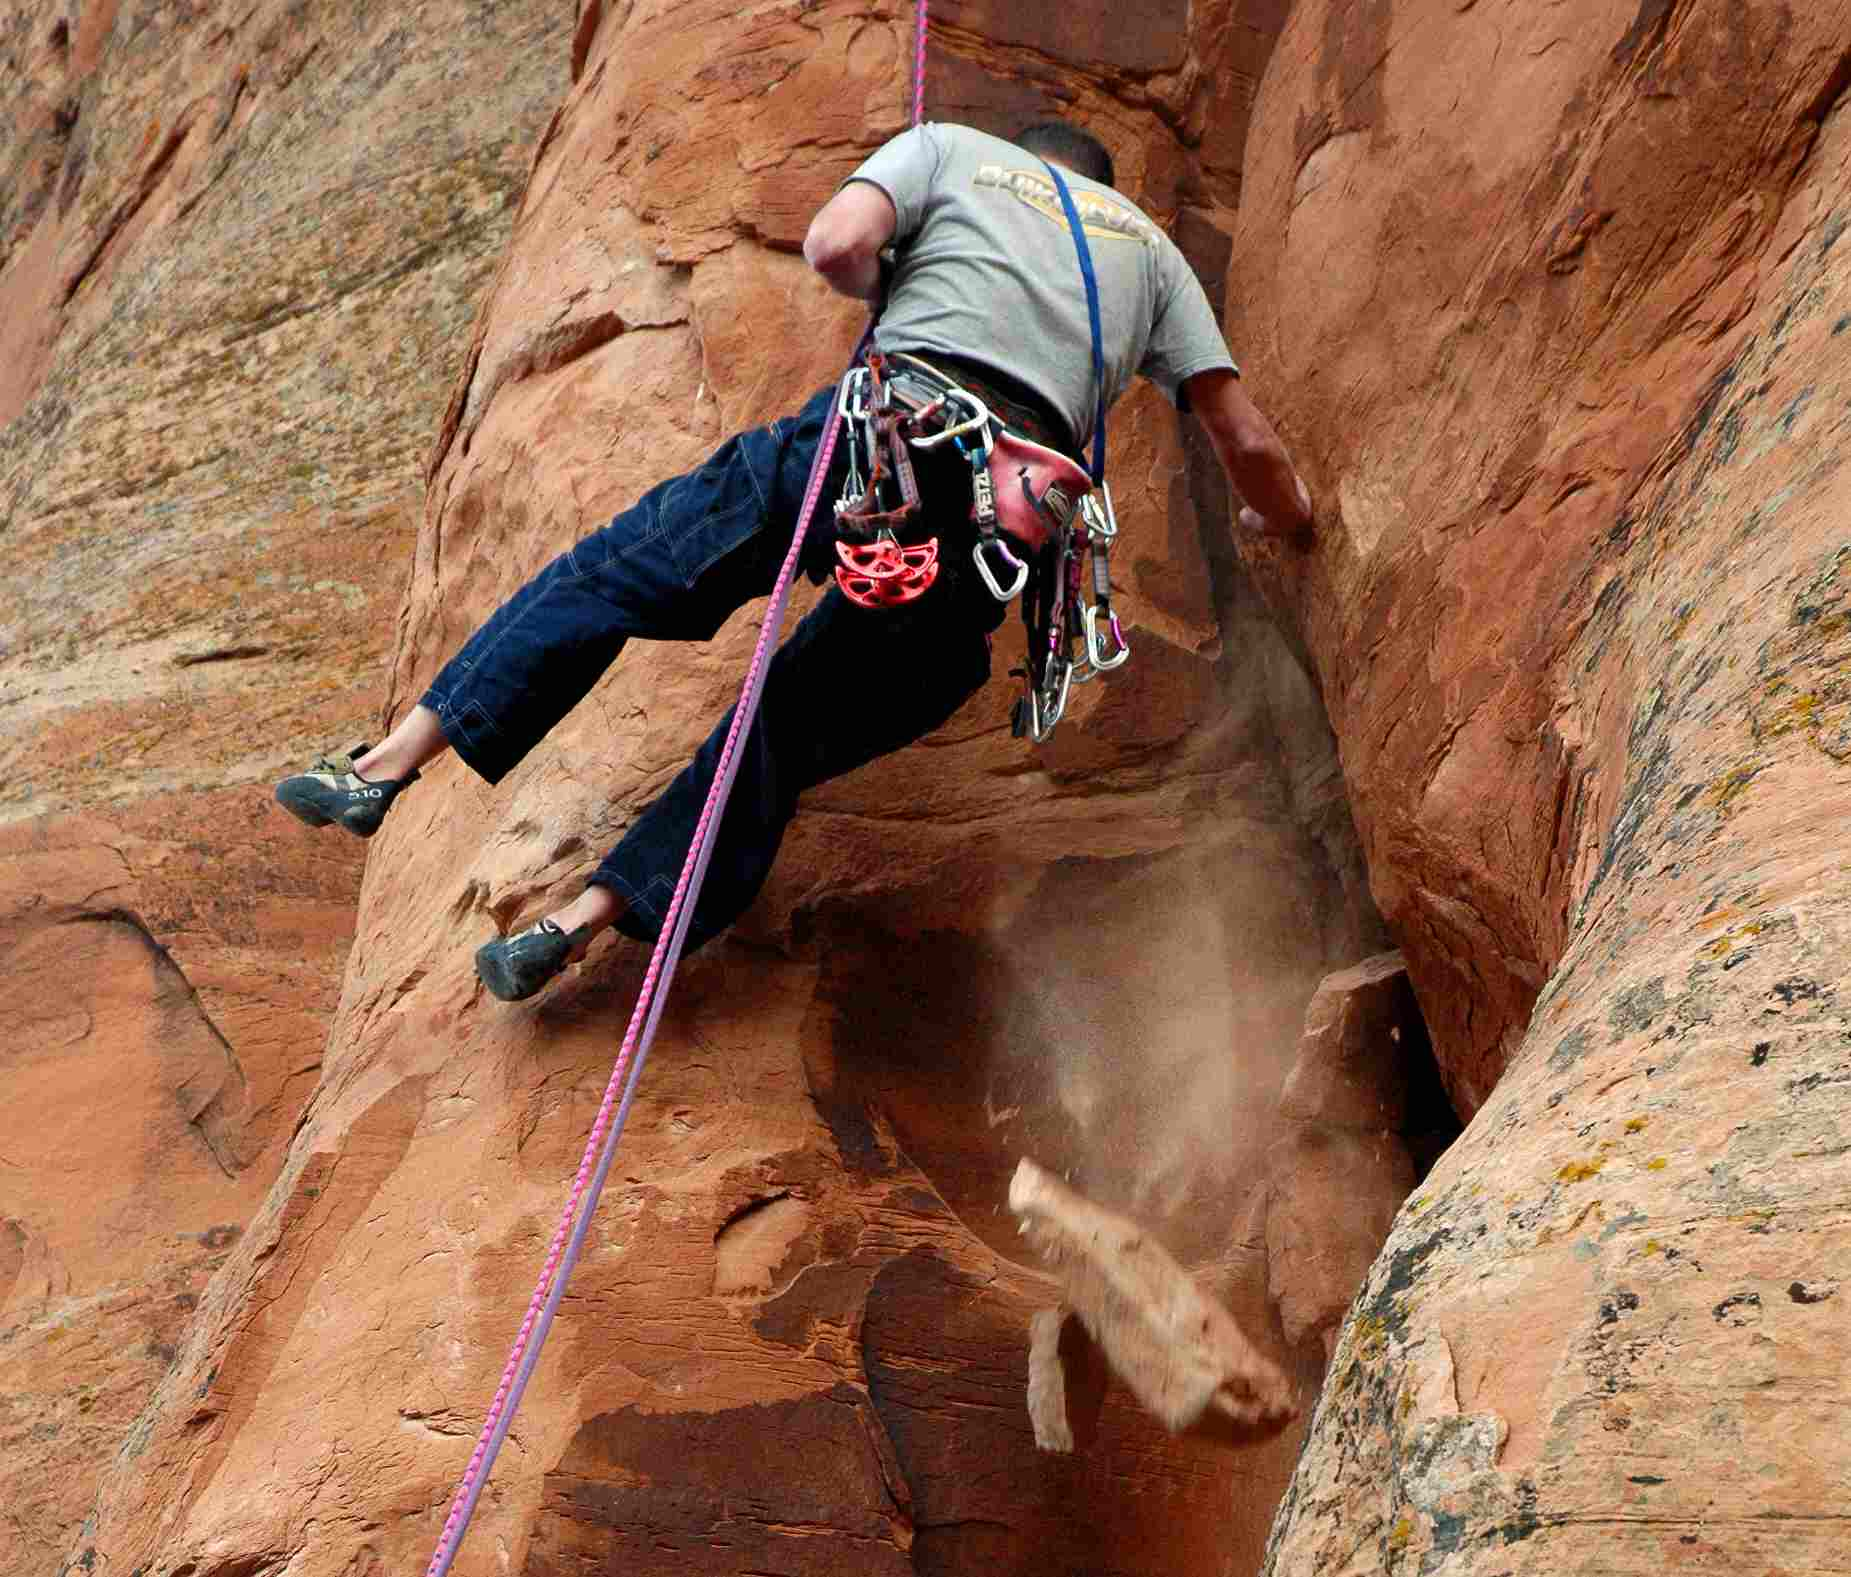 Ian Spencer-Green cleans loose blocks from a crack in western Colorado.